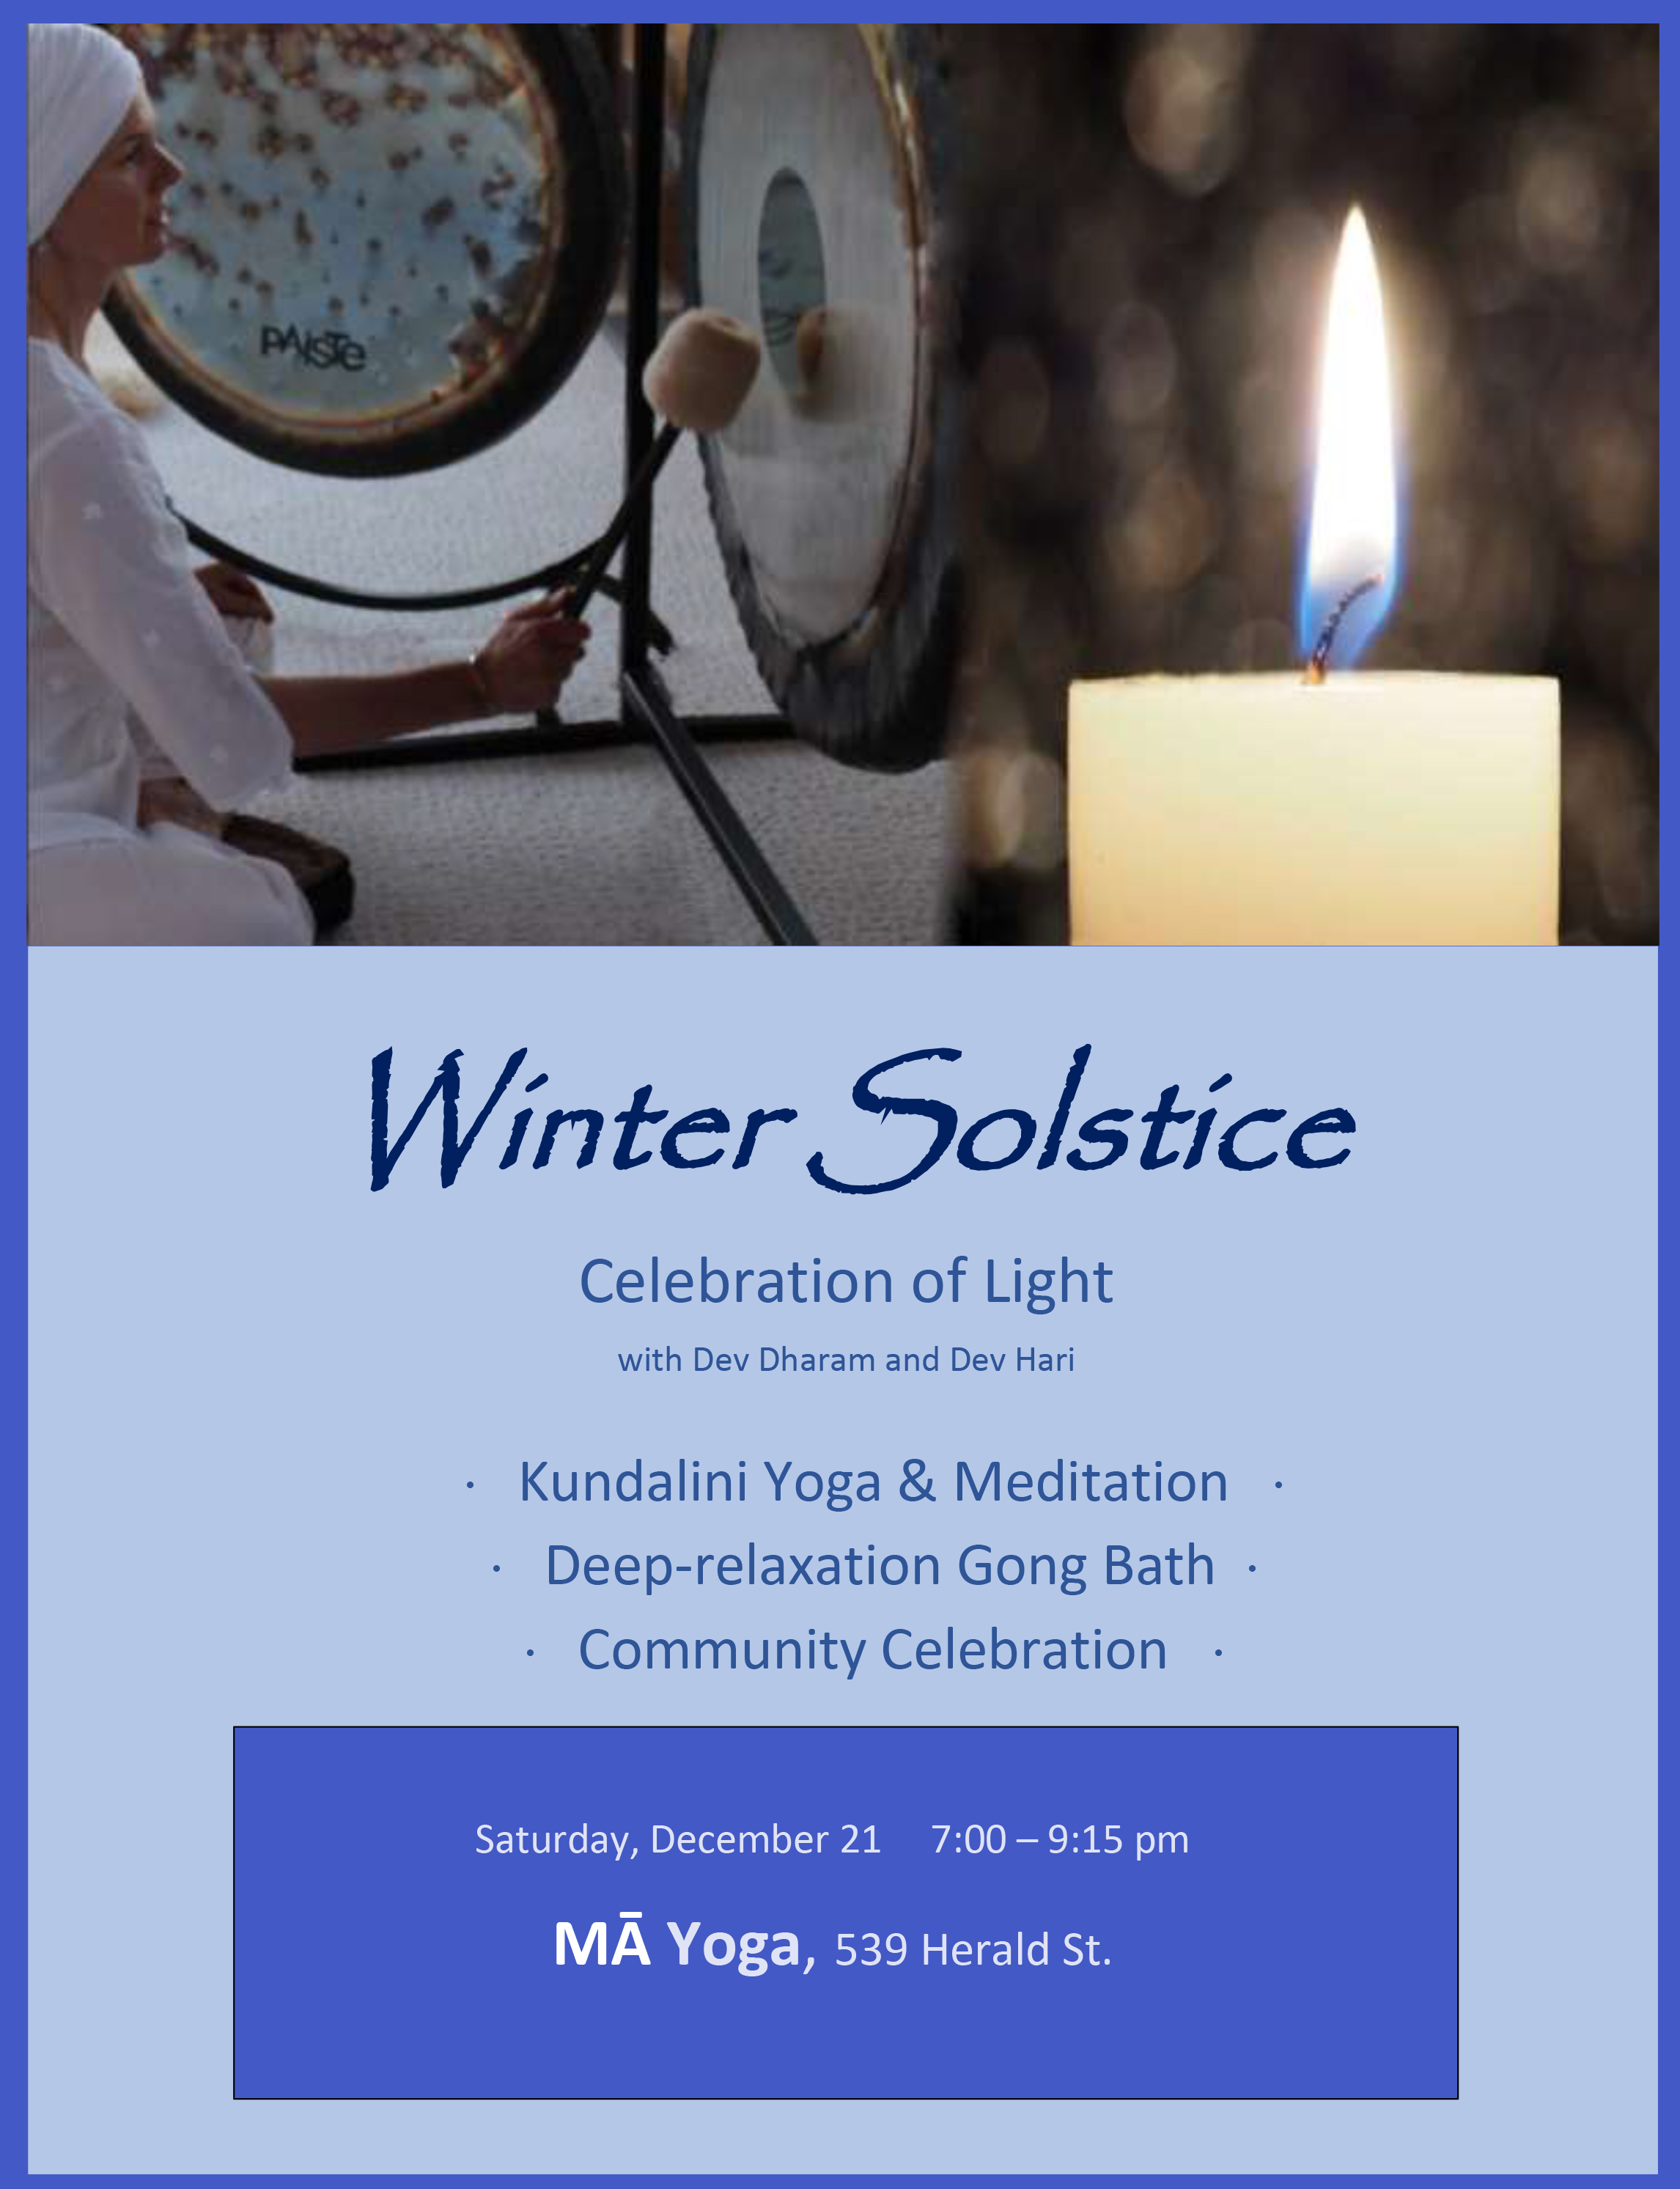 2019 Winter Solstice at MA